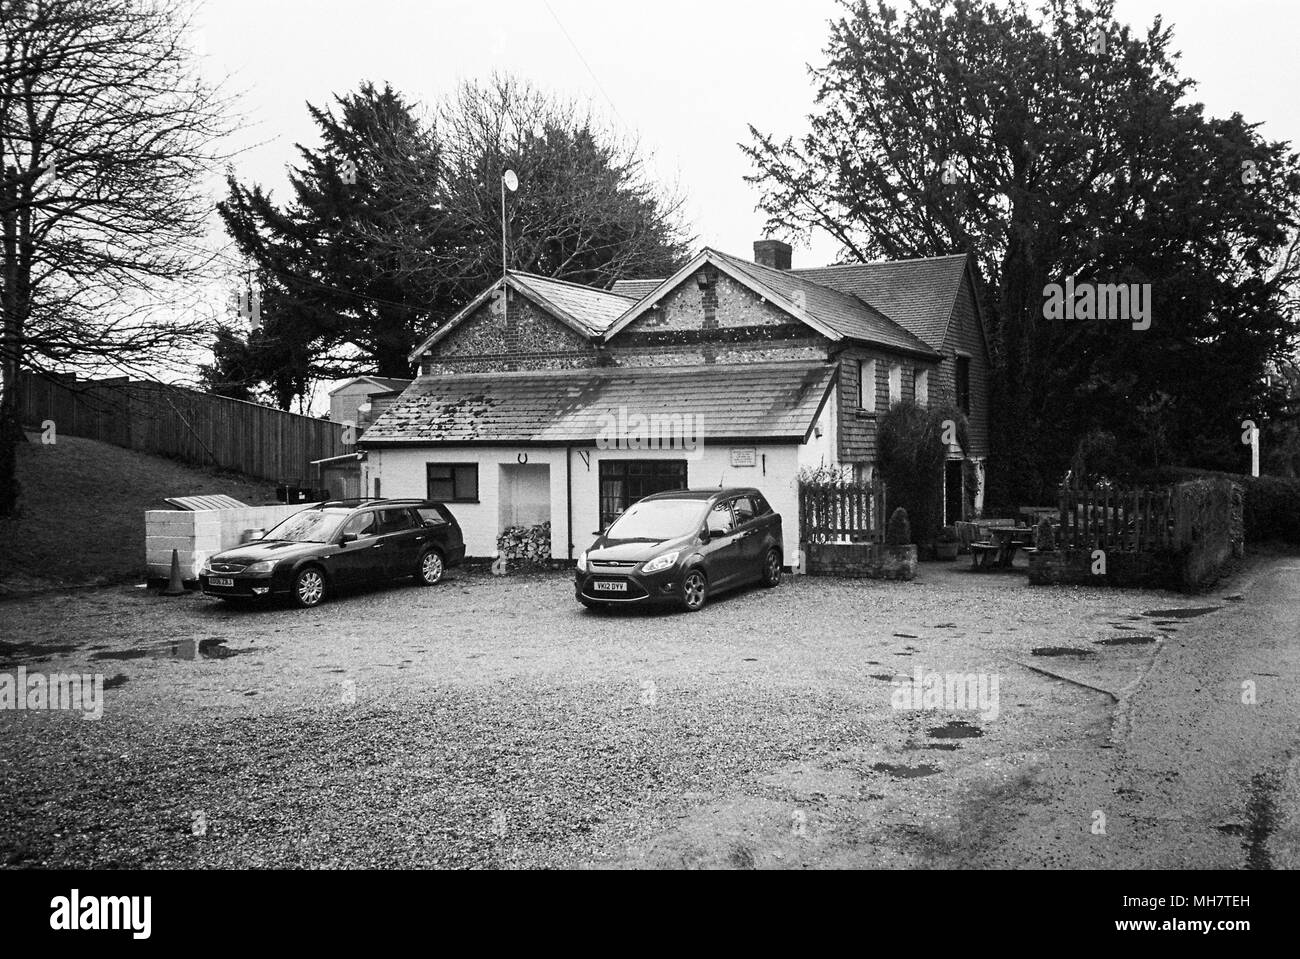 The Yew Tree public house in Lower Wield, Alresford, Hampshire, England, United Kingdom, - Stock Image